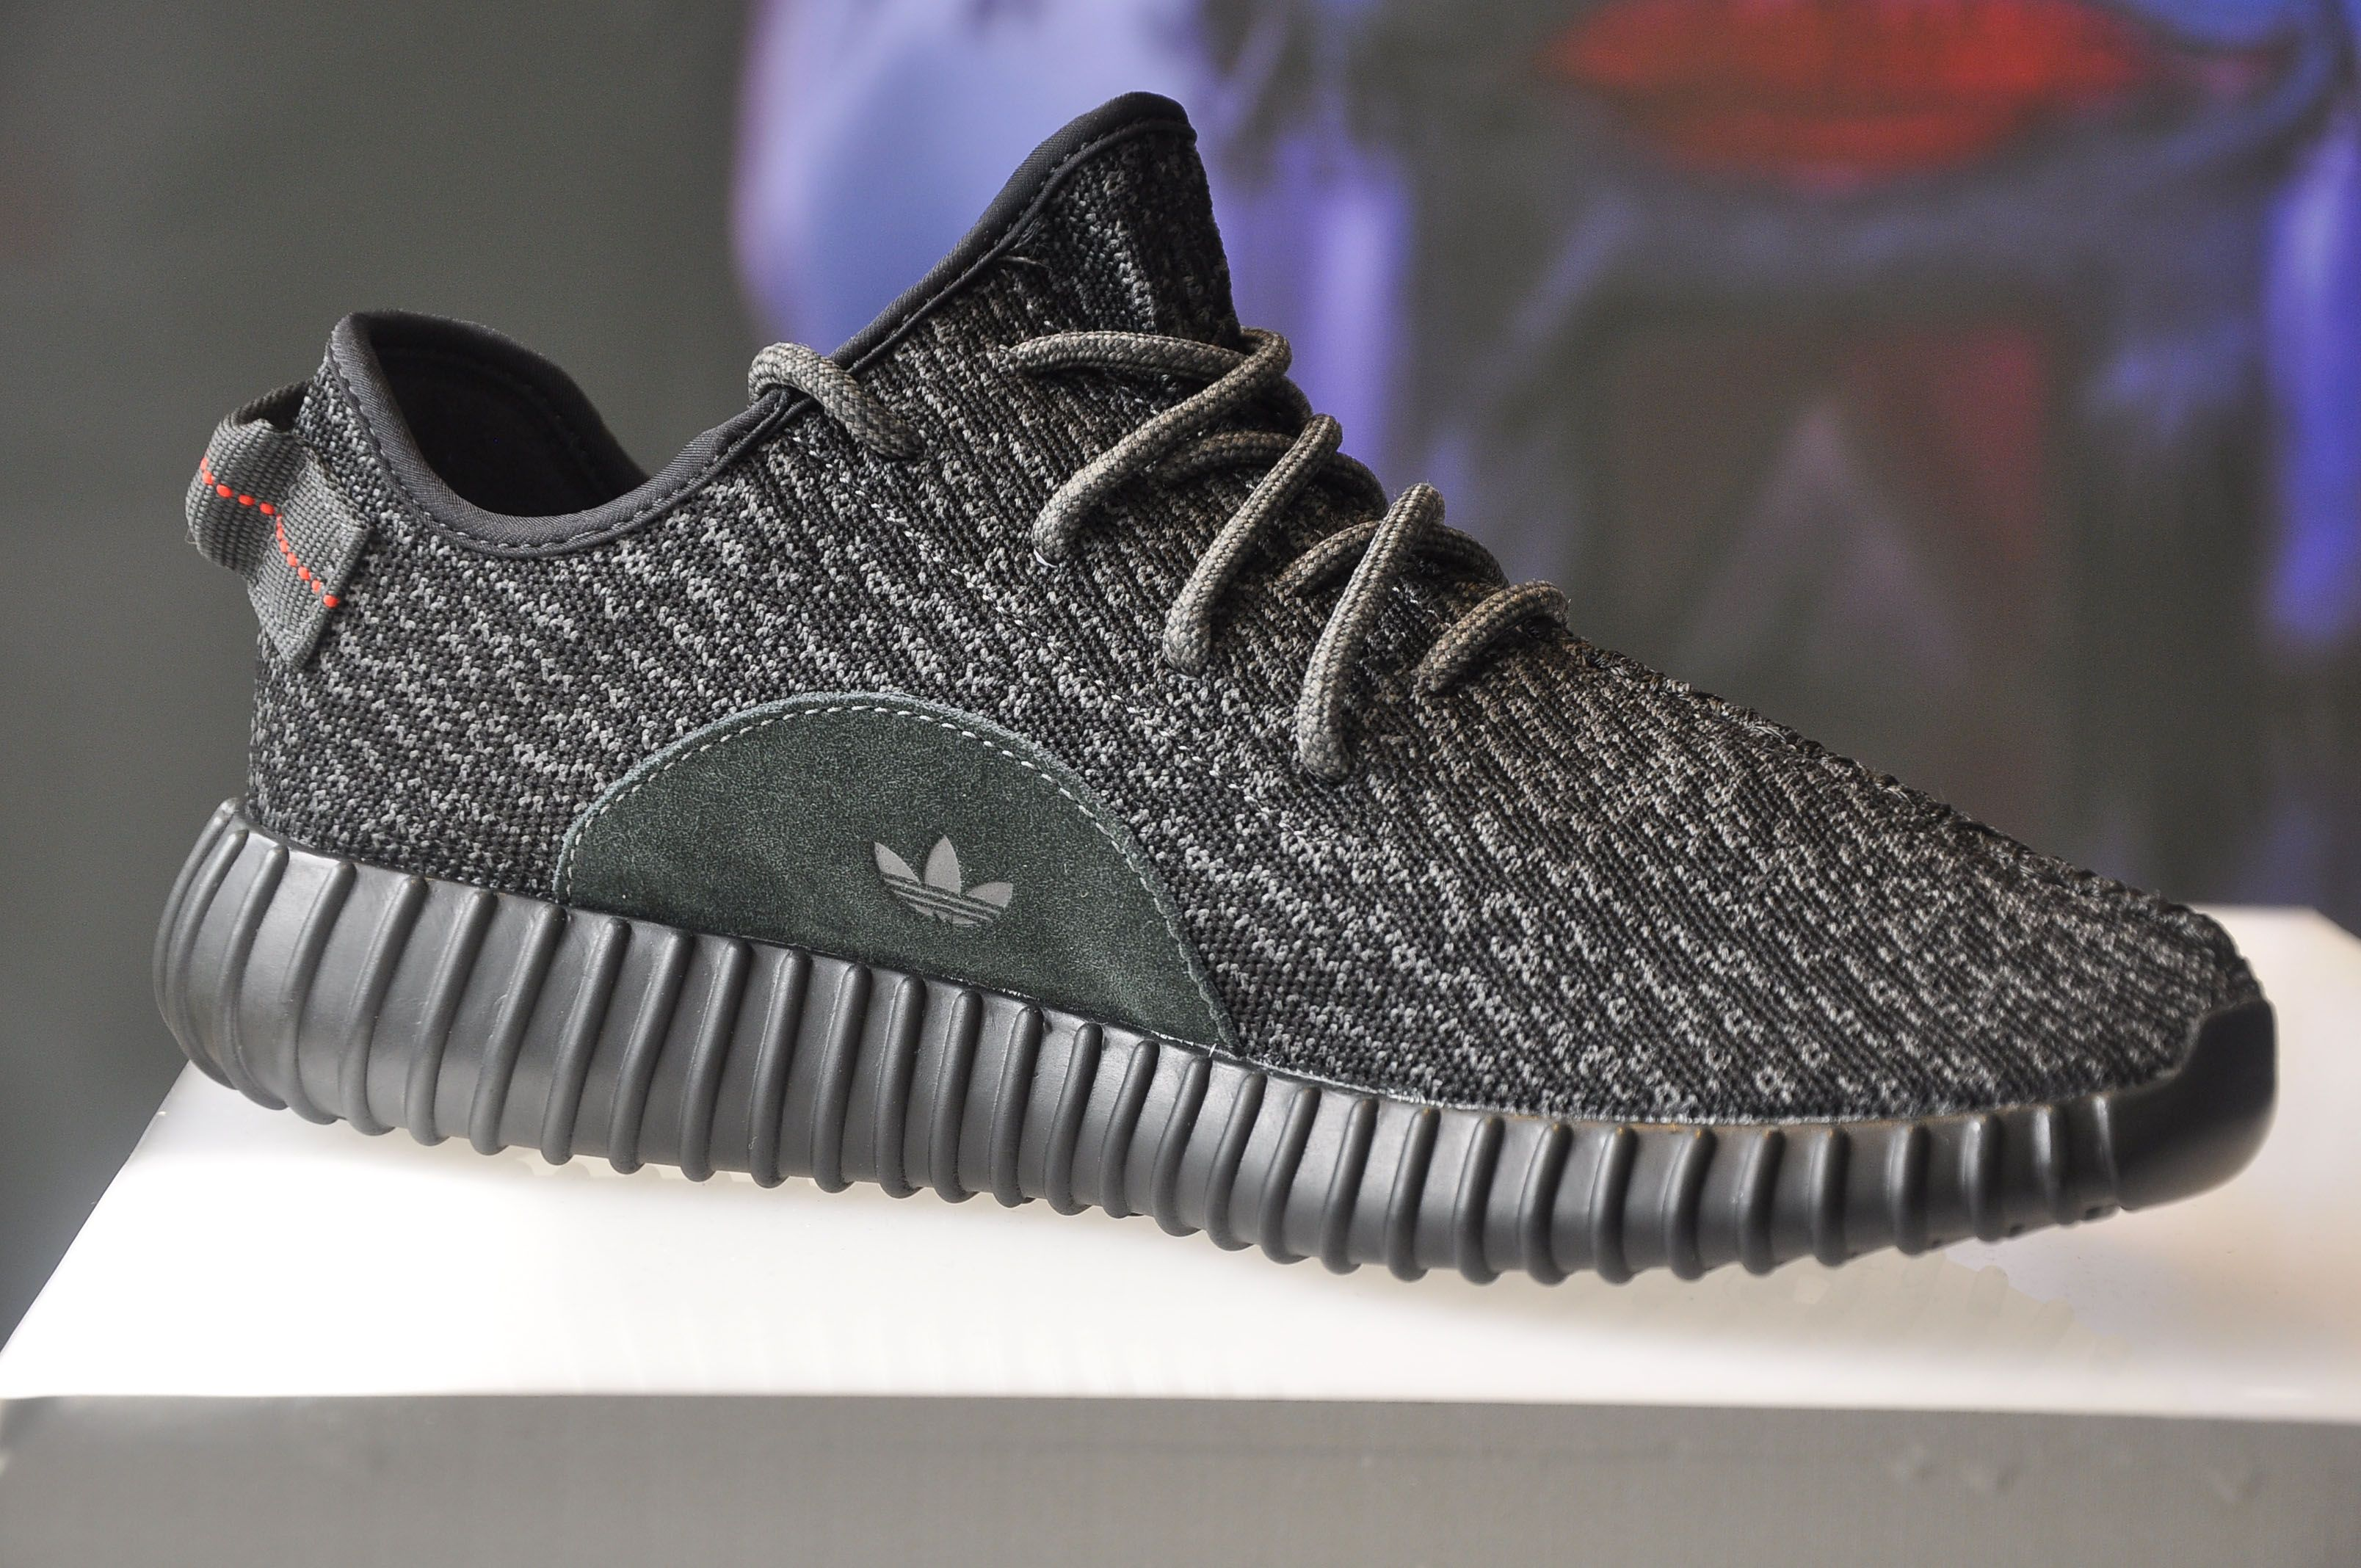 Buy Authentic AQ 4832 Adidas Yeezy 350 Boost 'Turtle Dove' Low